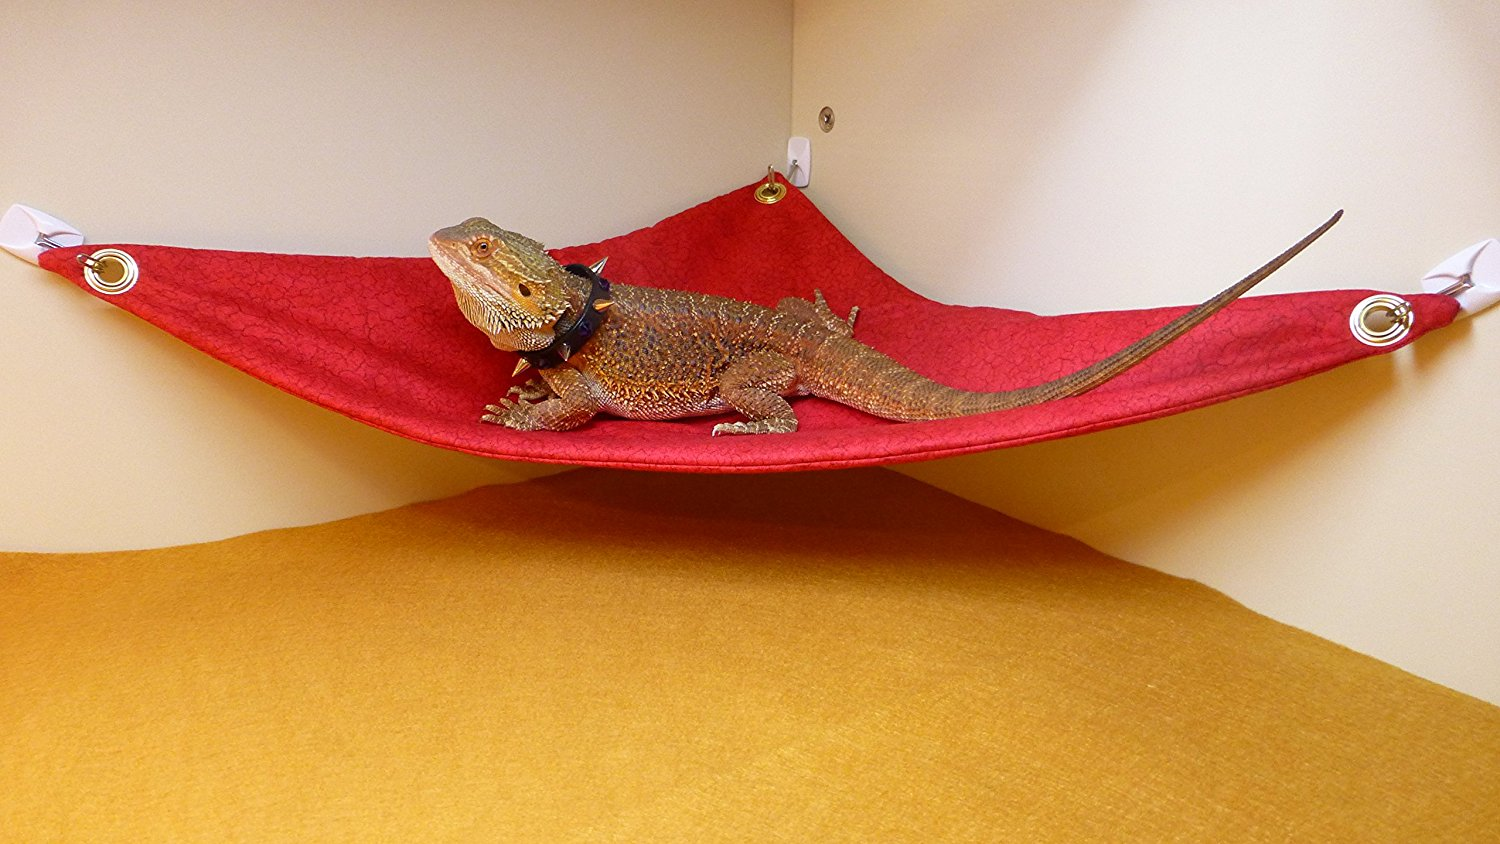 hammock for bearded dragons red crackle fabric with suction cup hooks carolina designer dragons hammock for bearded dragons red crackle      rh   carolinadesignerdragons